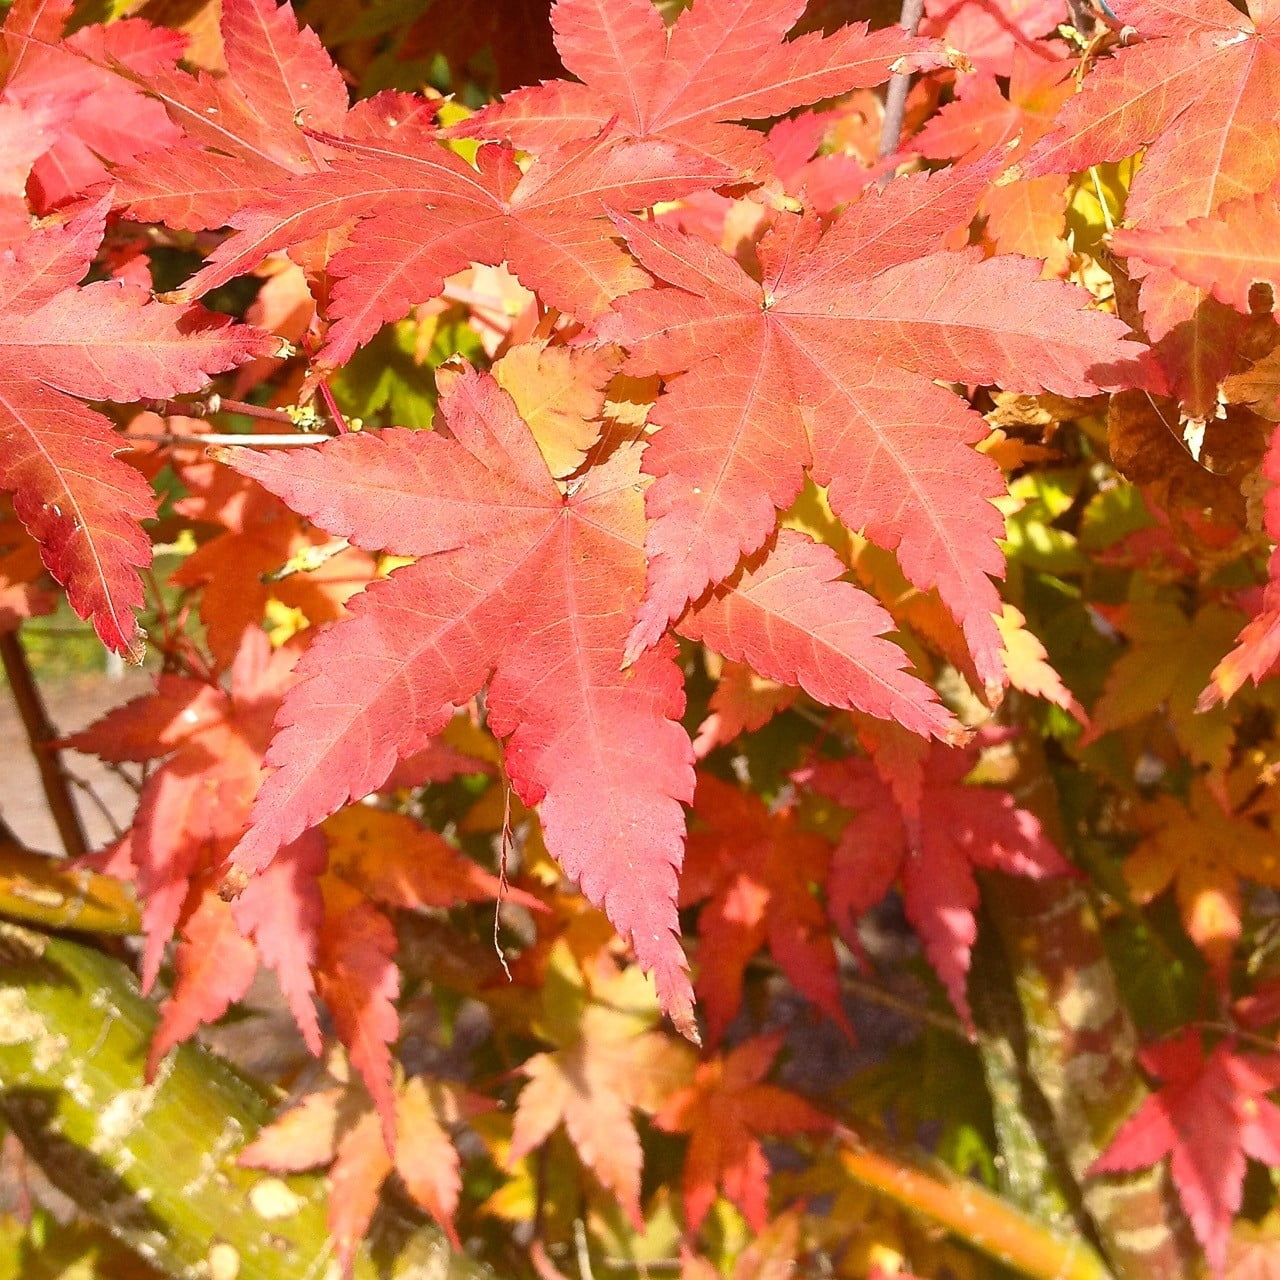 Beautiful Autumn foliage of these Acer trees we were buying for clients at Hilliers tree nursery